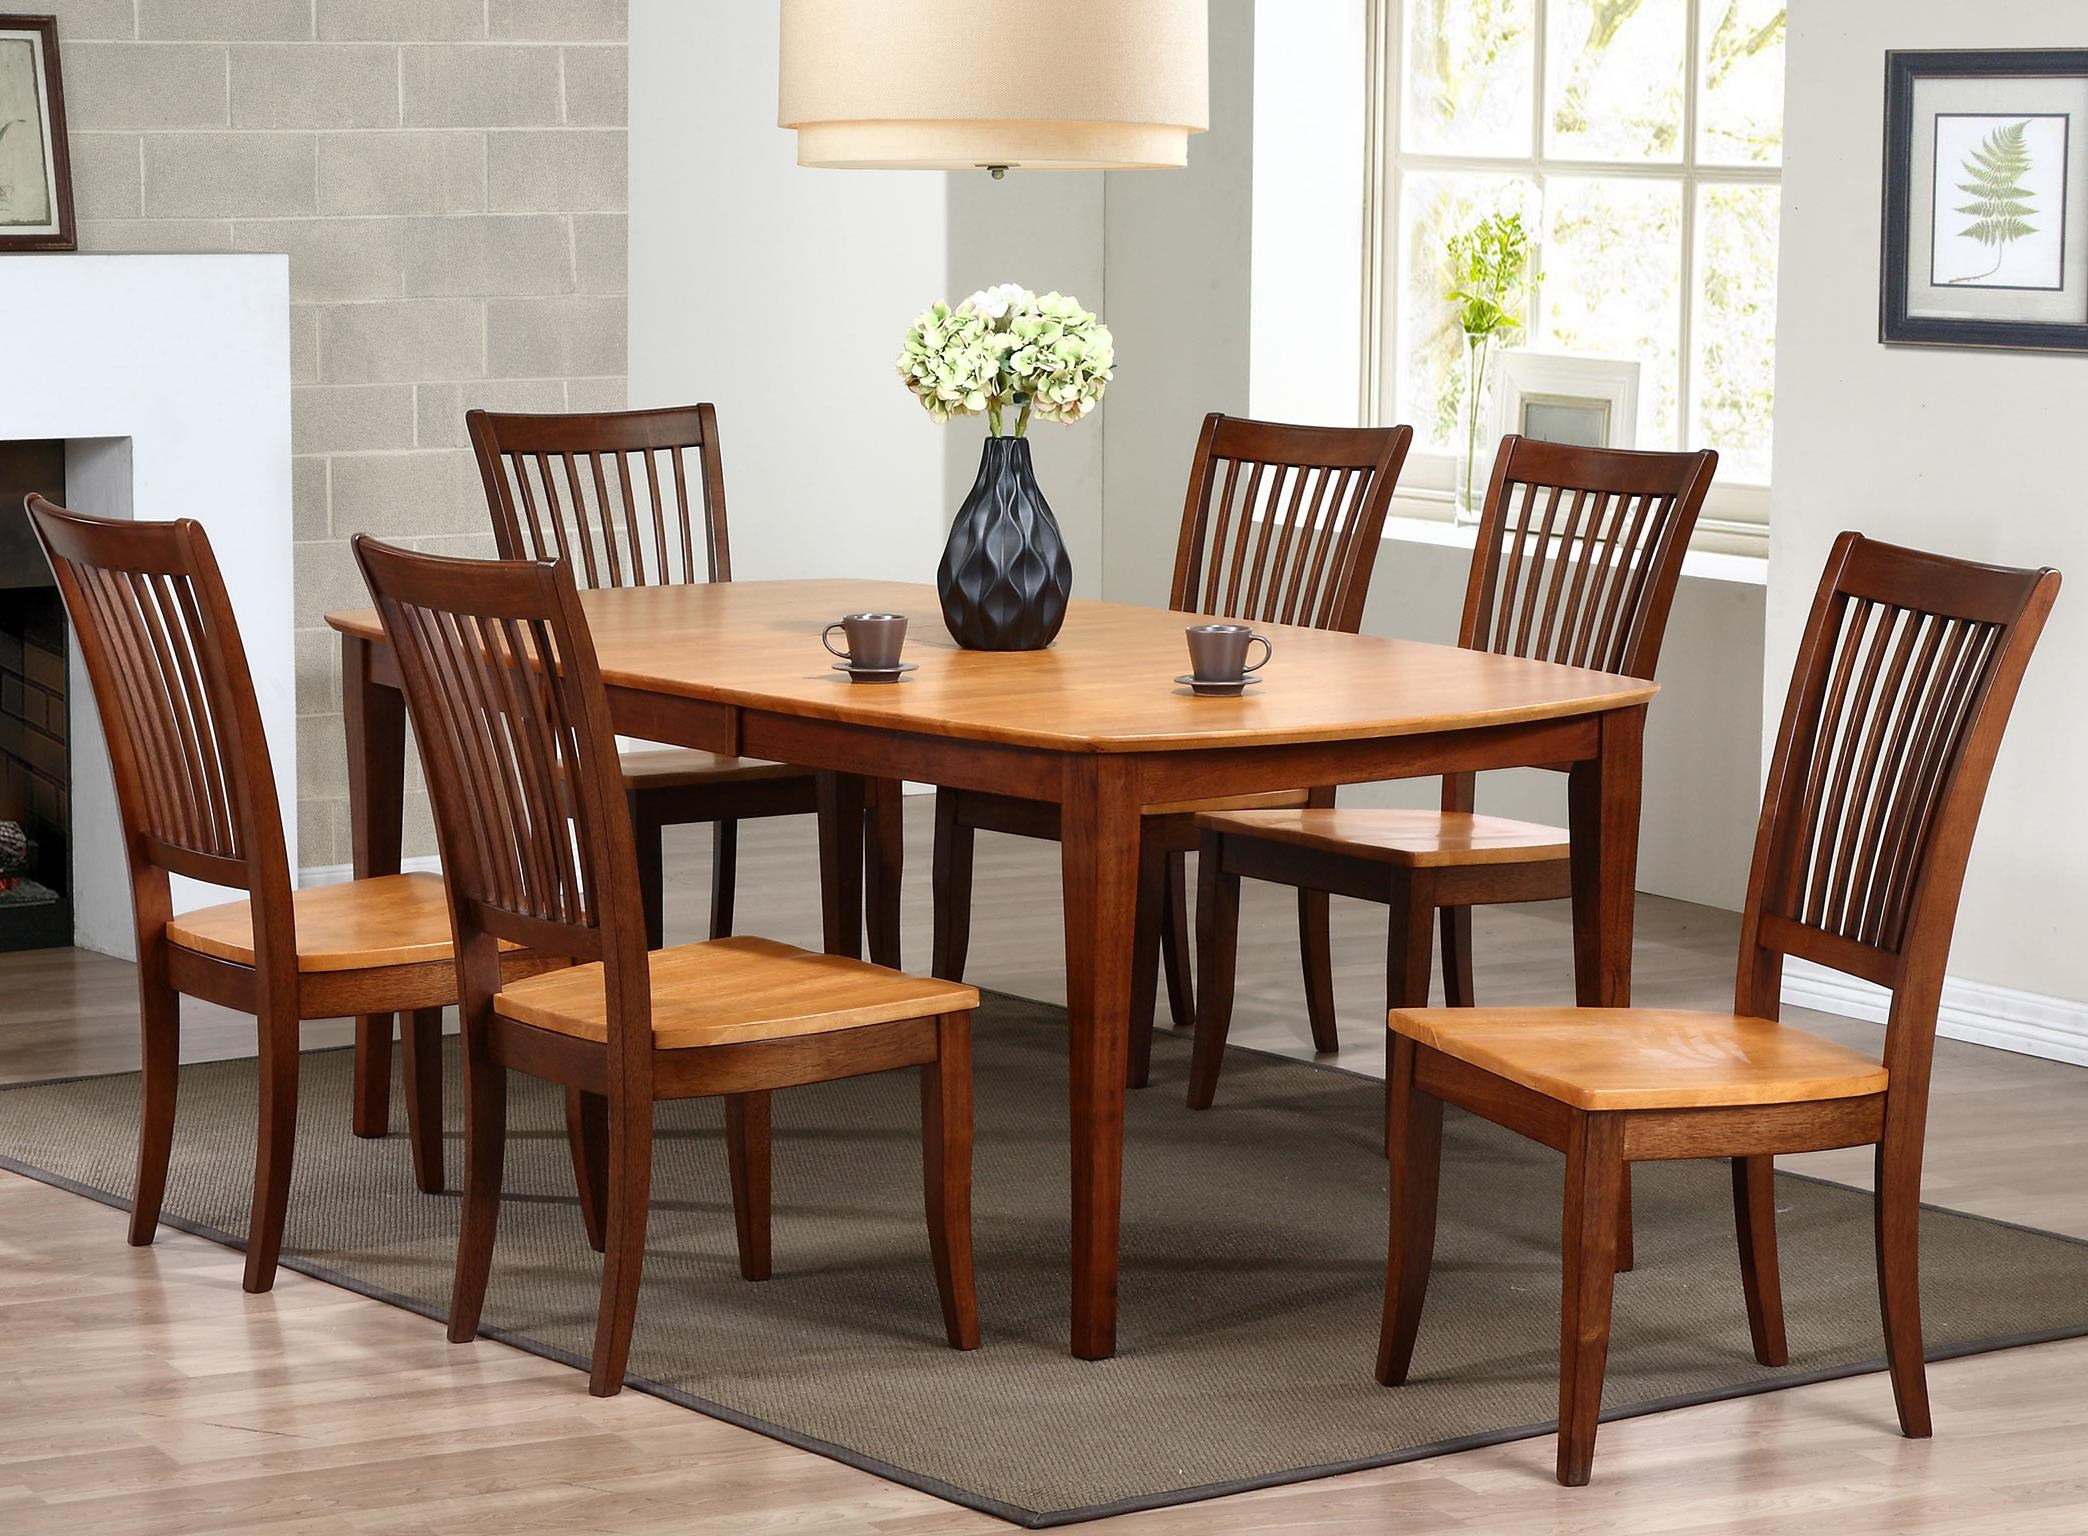 Delicieux Santa Barbara 7 Piece Dining Set With Slat Back Chairs By Winners Only